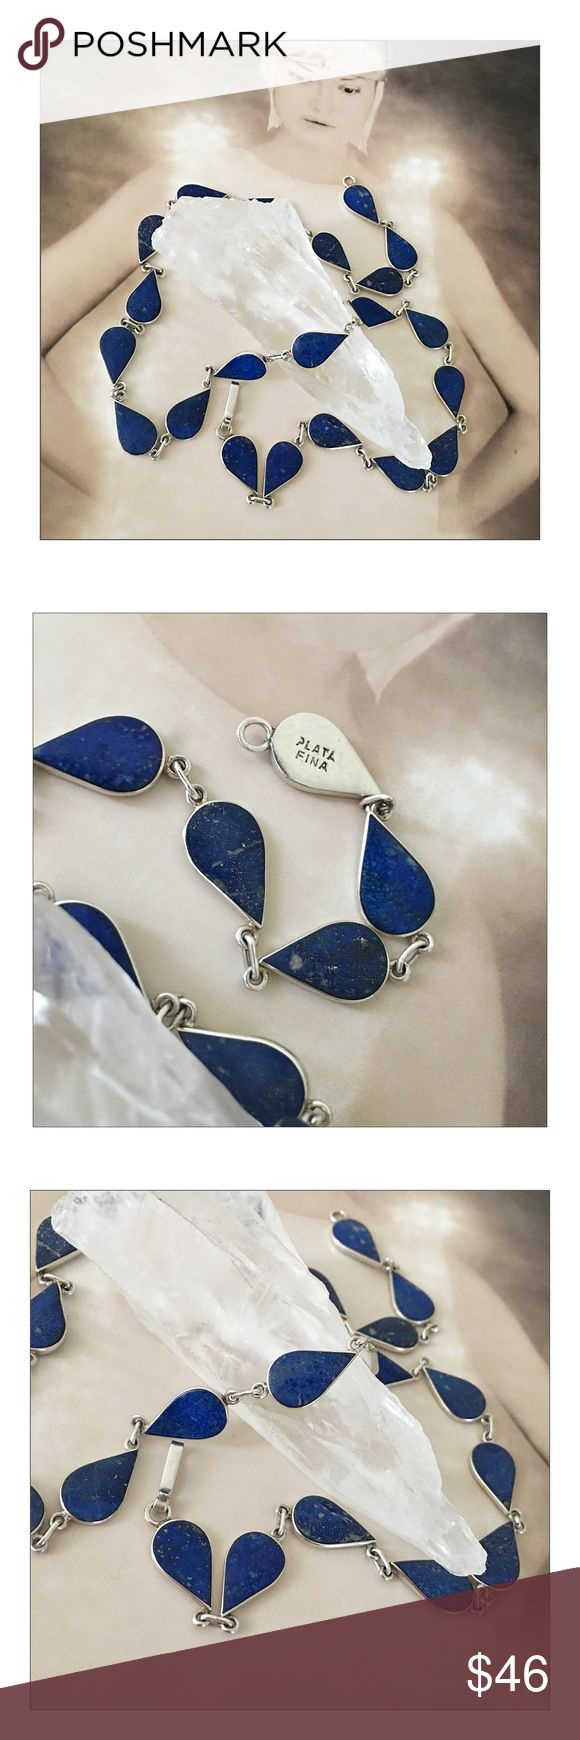 "✨Vintage Fine Sterling Silver Lapis Necklace✨ ✨Vintage Fine Sterling Silver Lapis Necklace✨Gorgeous Lapis Lazuli Teardrops Necklace Marked ""Plata Fina"" {Fine Silver}✨Approximately 19"" Long✨All The Teardrops Display Beautiful, Intact Lapis Stone✨Read About The Healing Properties Of Lapis In The Comments✨ Vintage Jewelry Necklaces"